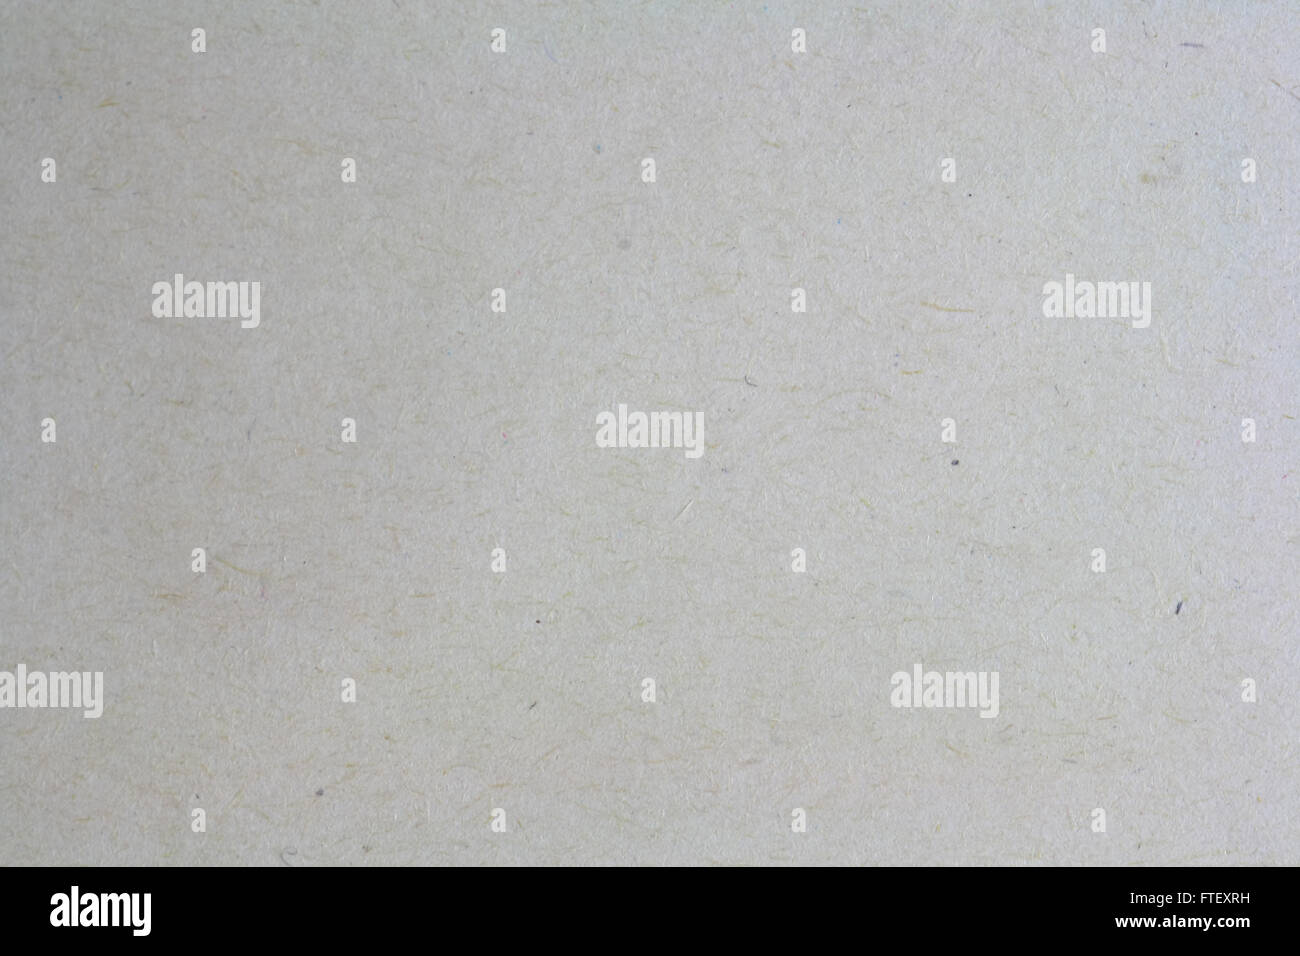 old recycled paper texture background - Stock Image